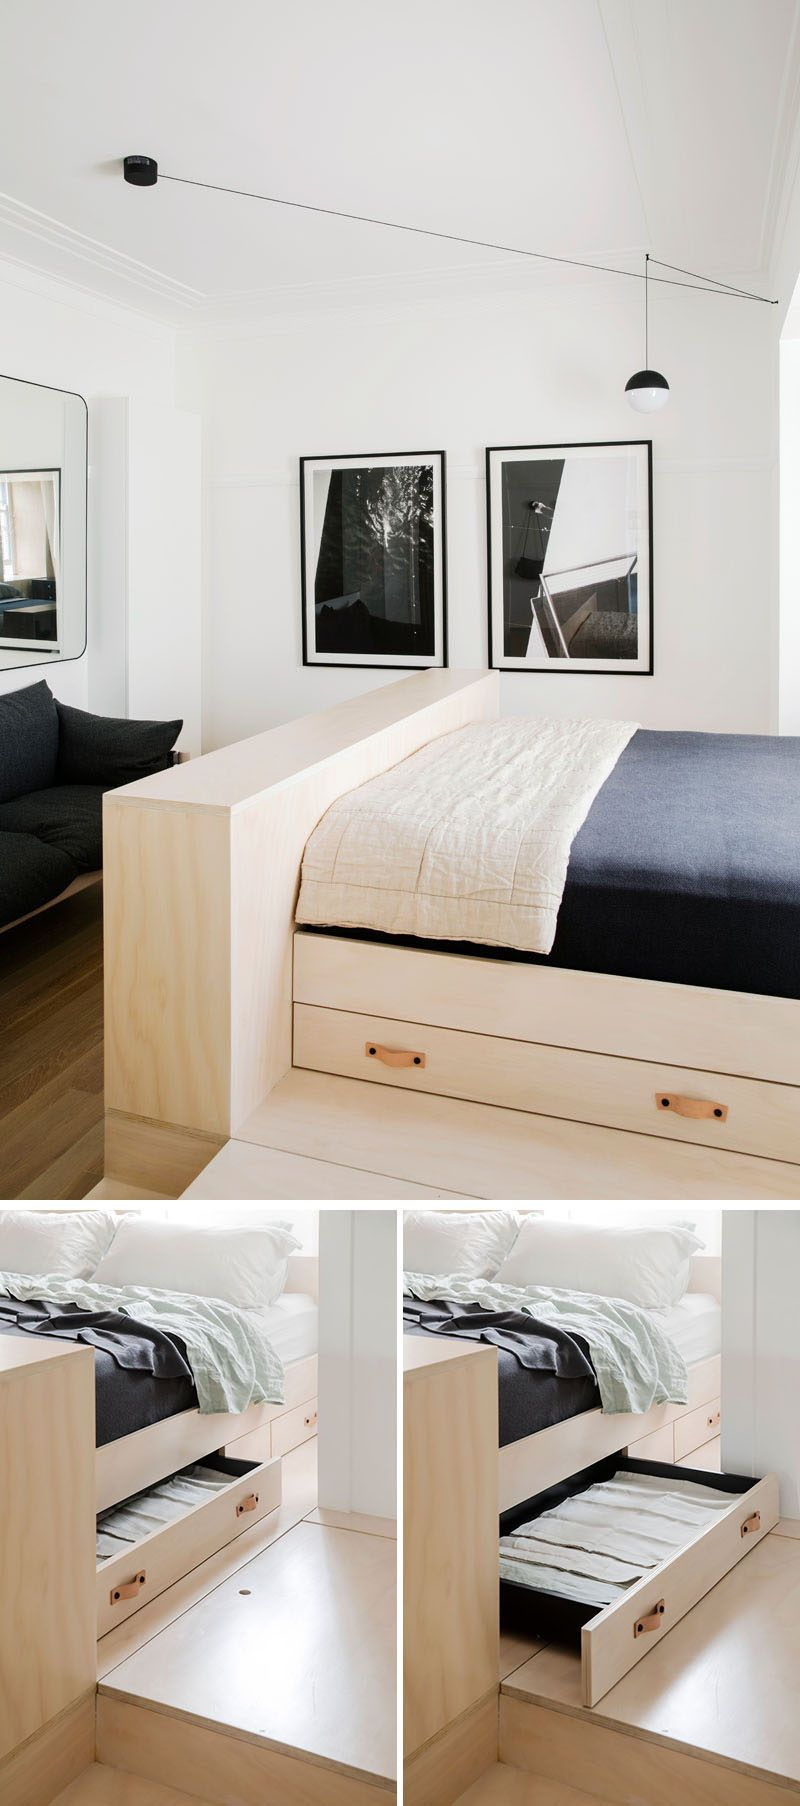 3 master bedroom apartments  This Small Apartment Is Filled With Creative Storage Solutions